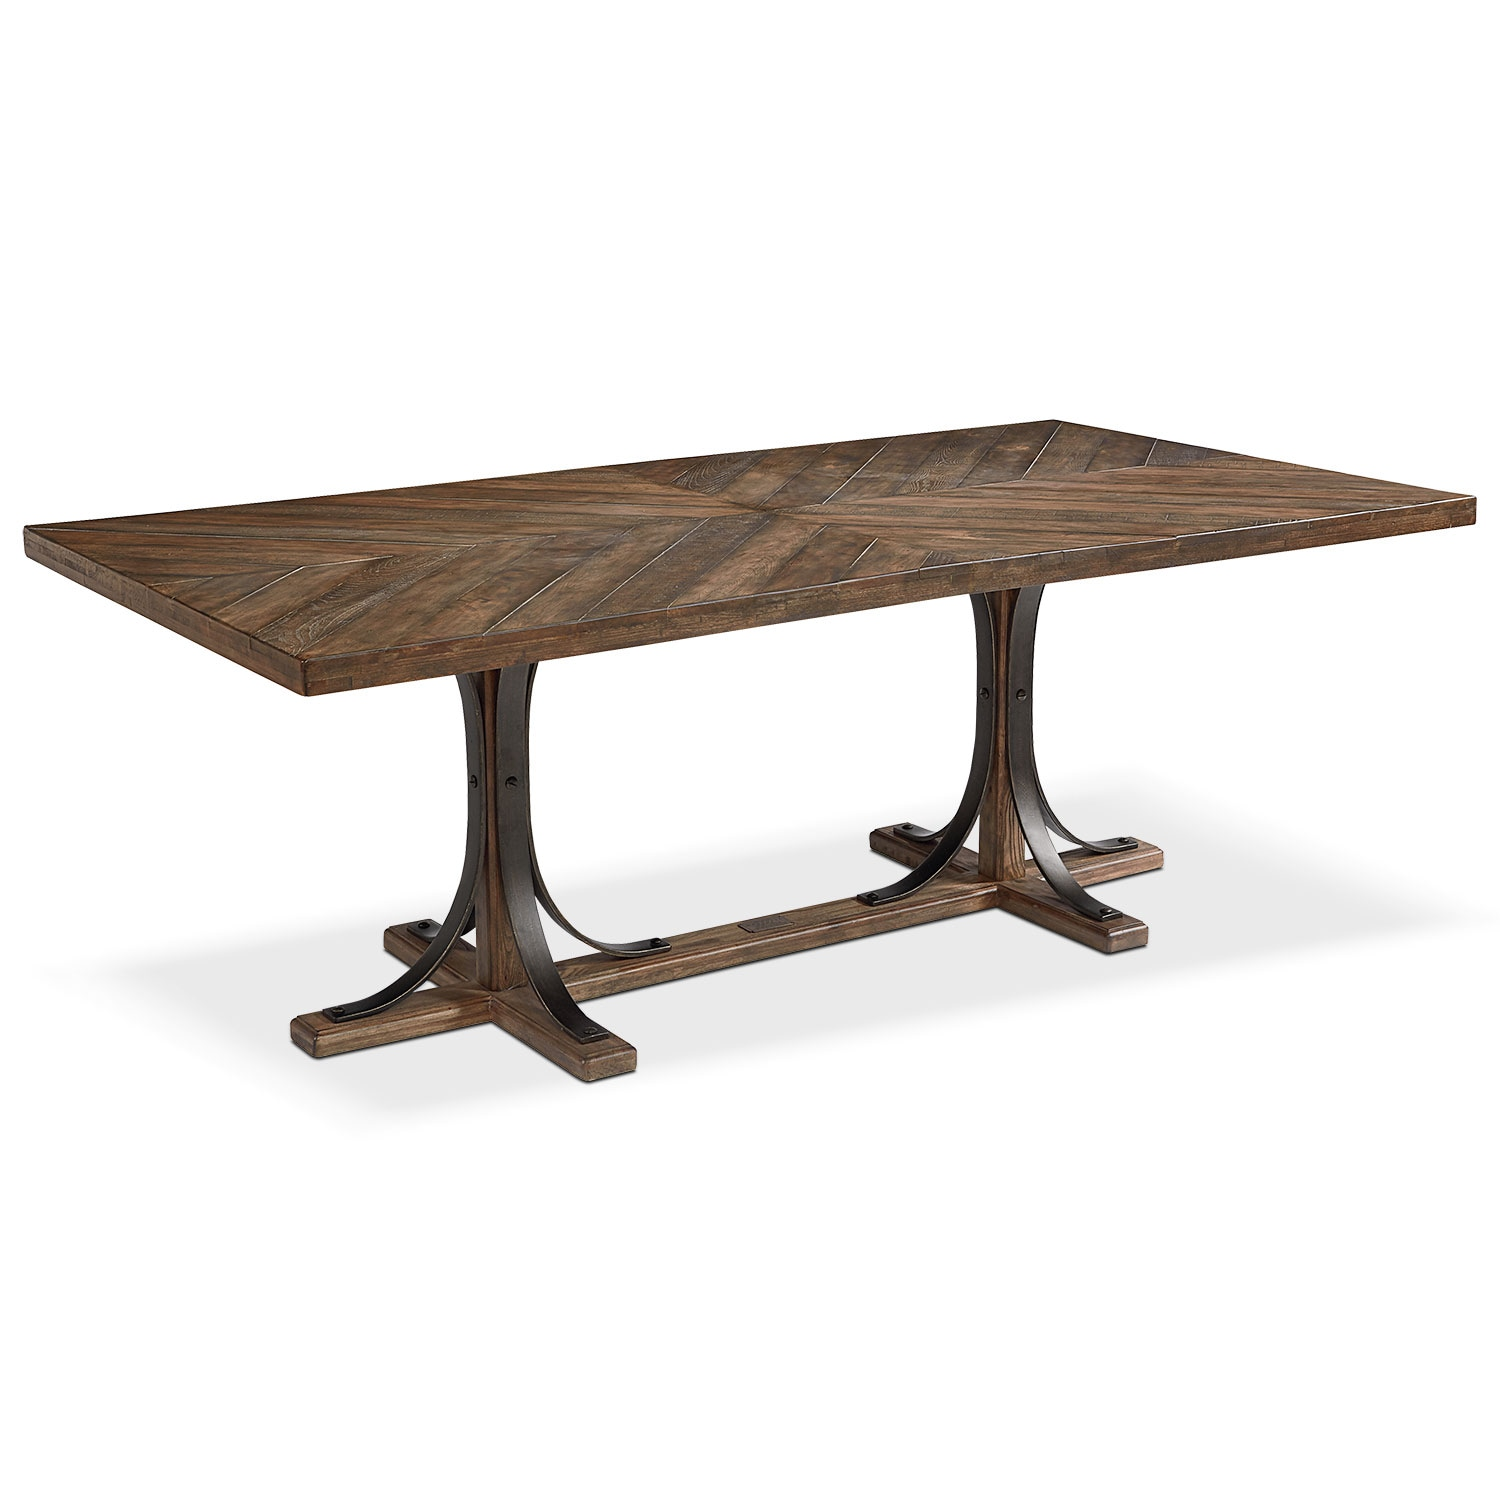 Dining Room Furniture - Traditional Iron Trestle Table